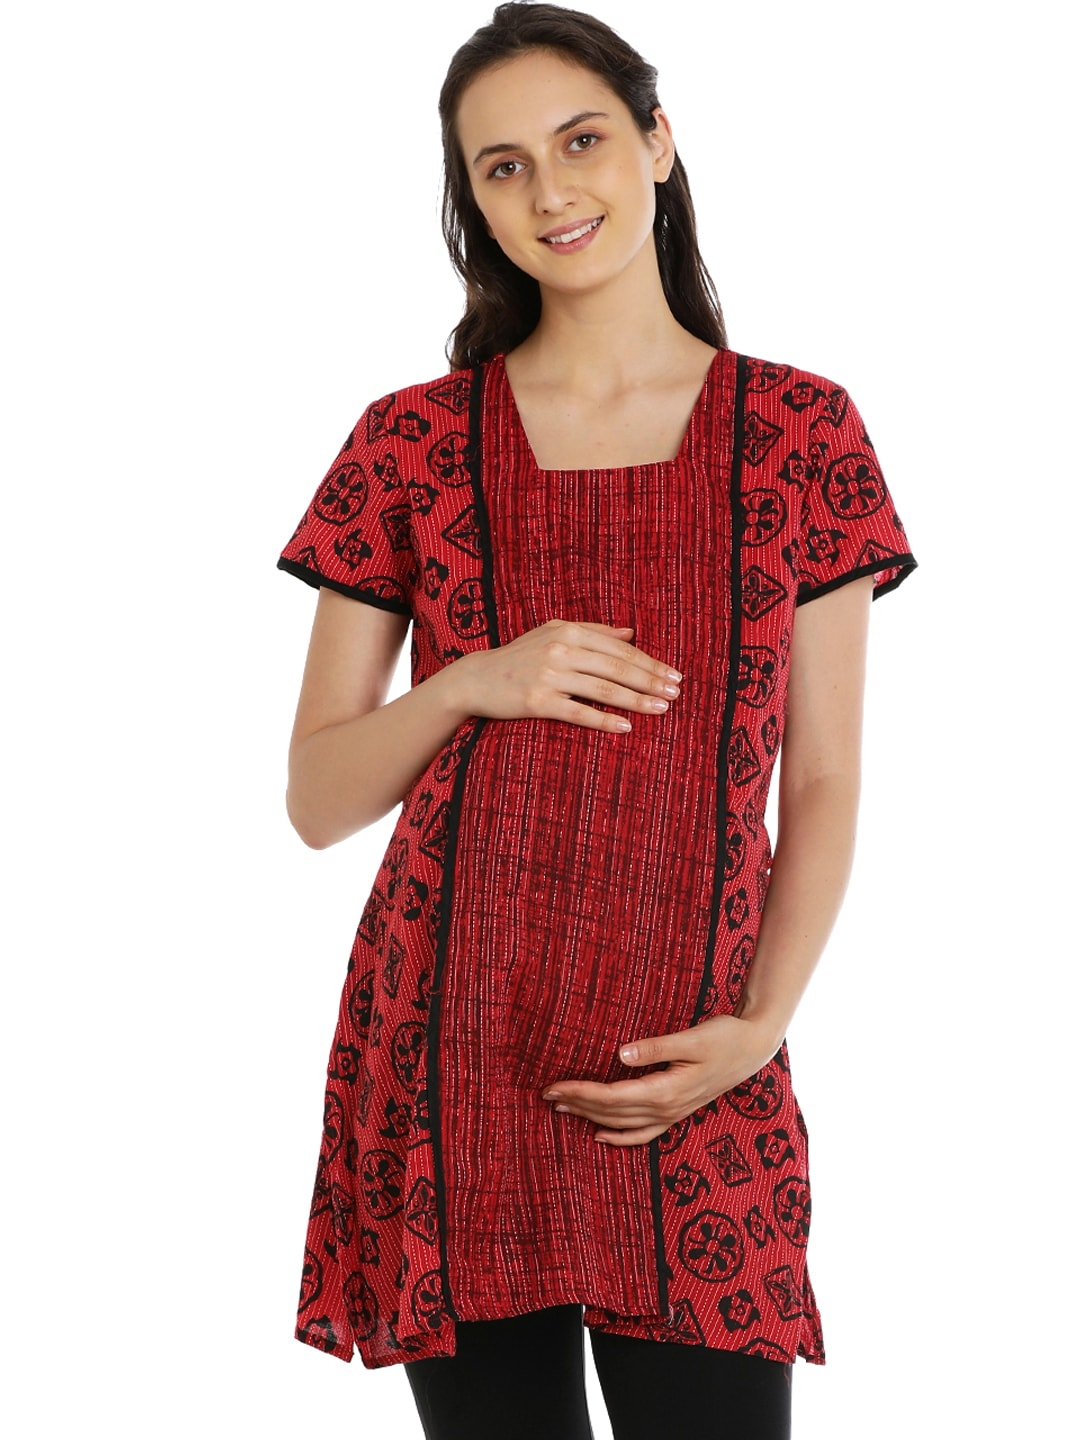 4f402f57f7510 Ethnic Wear - Buy Ethnic Wear for Men & Women Online | Myntra